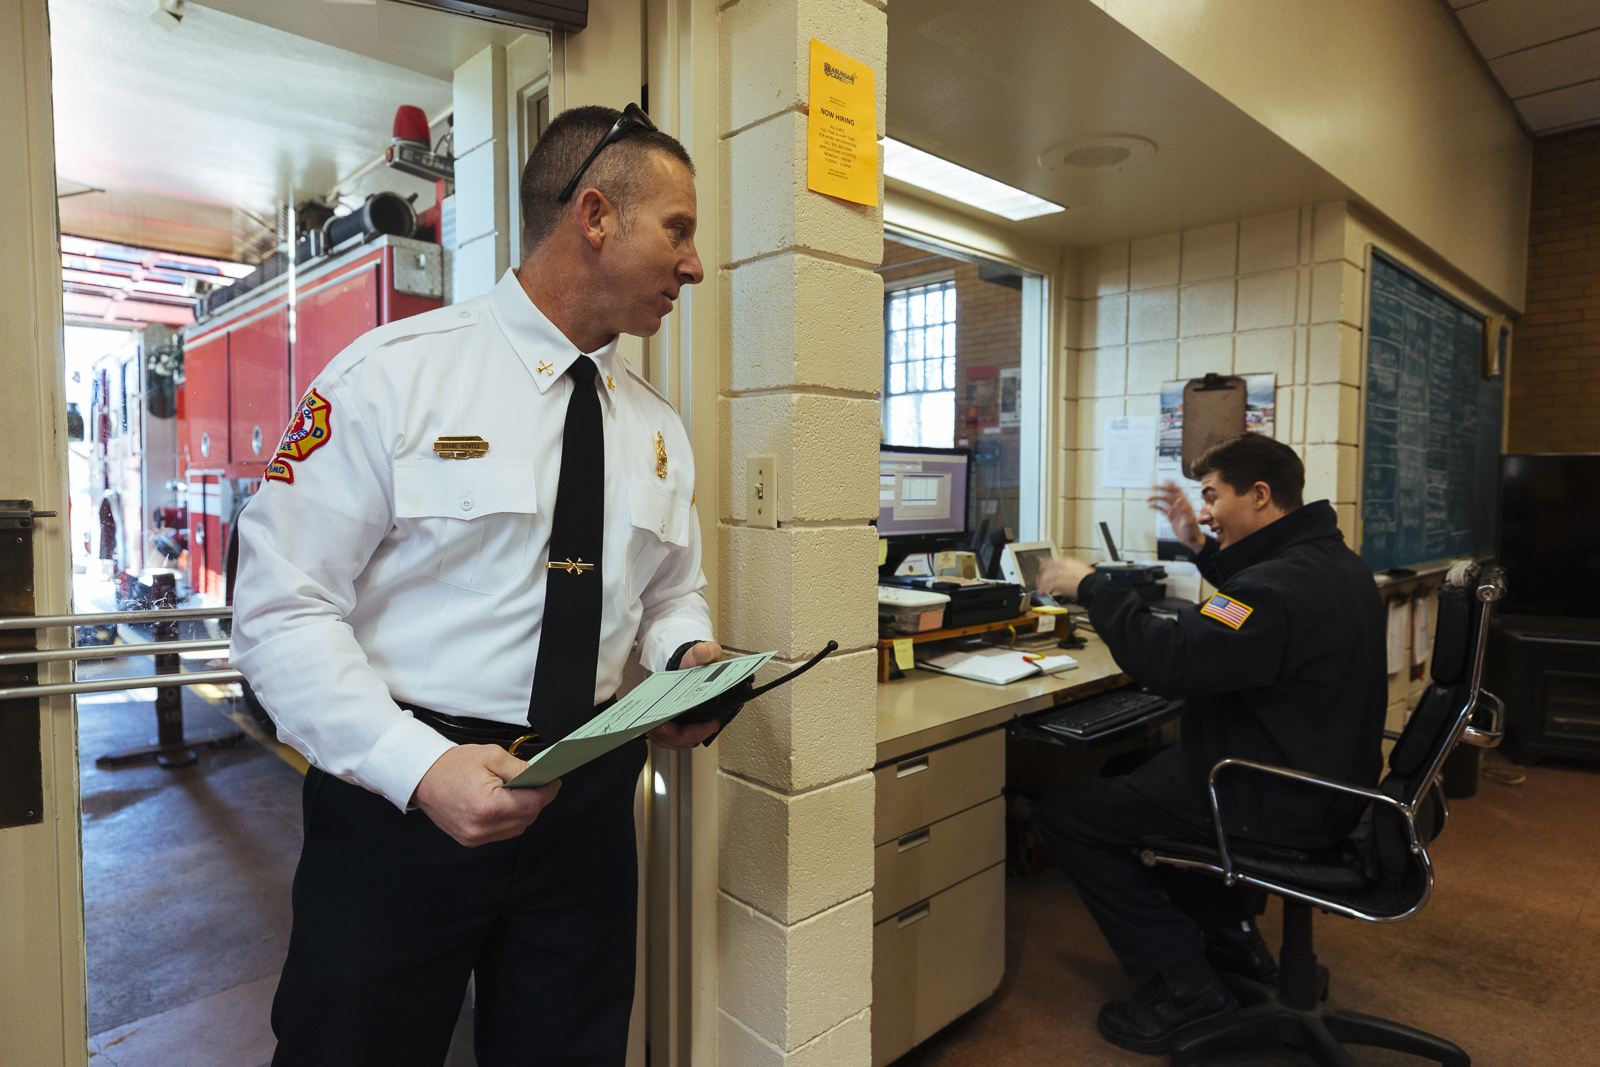 Twenty-year veteran Shane Howell (left) stops by with paperwork as Private Michael Pence (right) works the Station 18 desk where crew members field emergency calls and help citizen who walk in with an emergency. (Ziggy Mack)